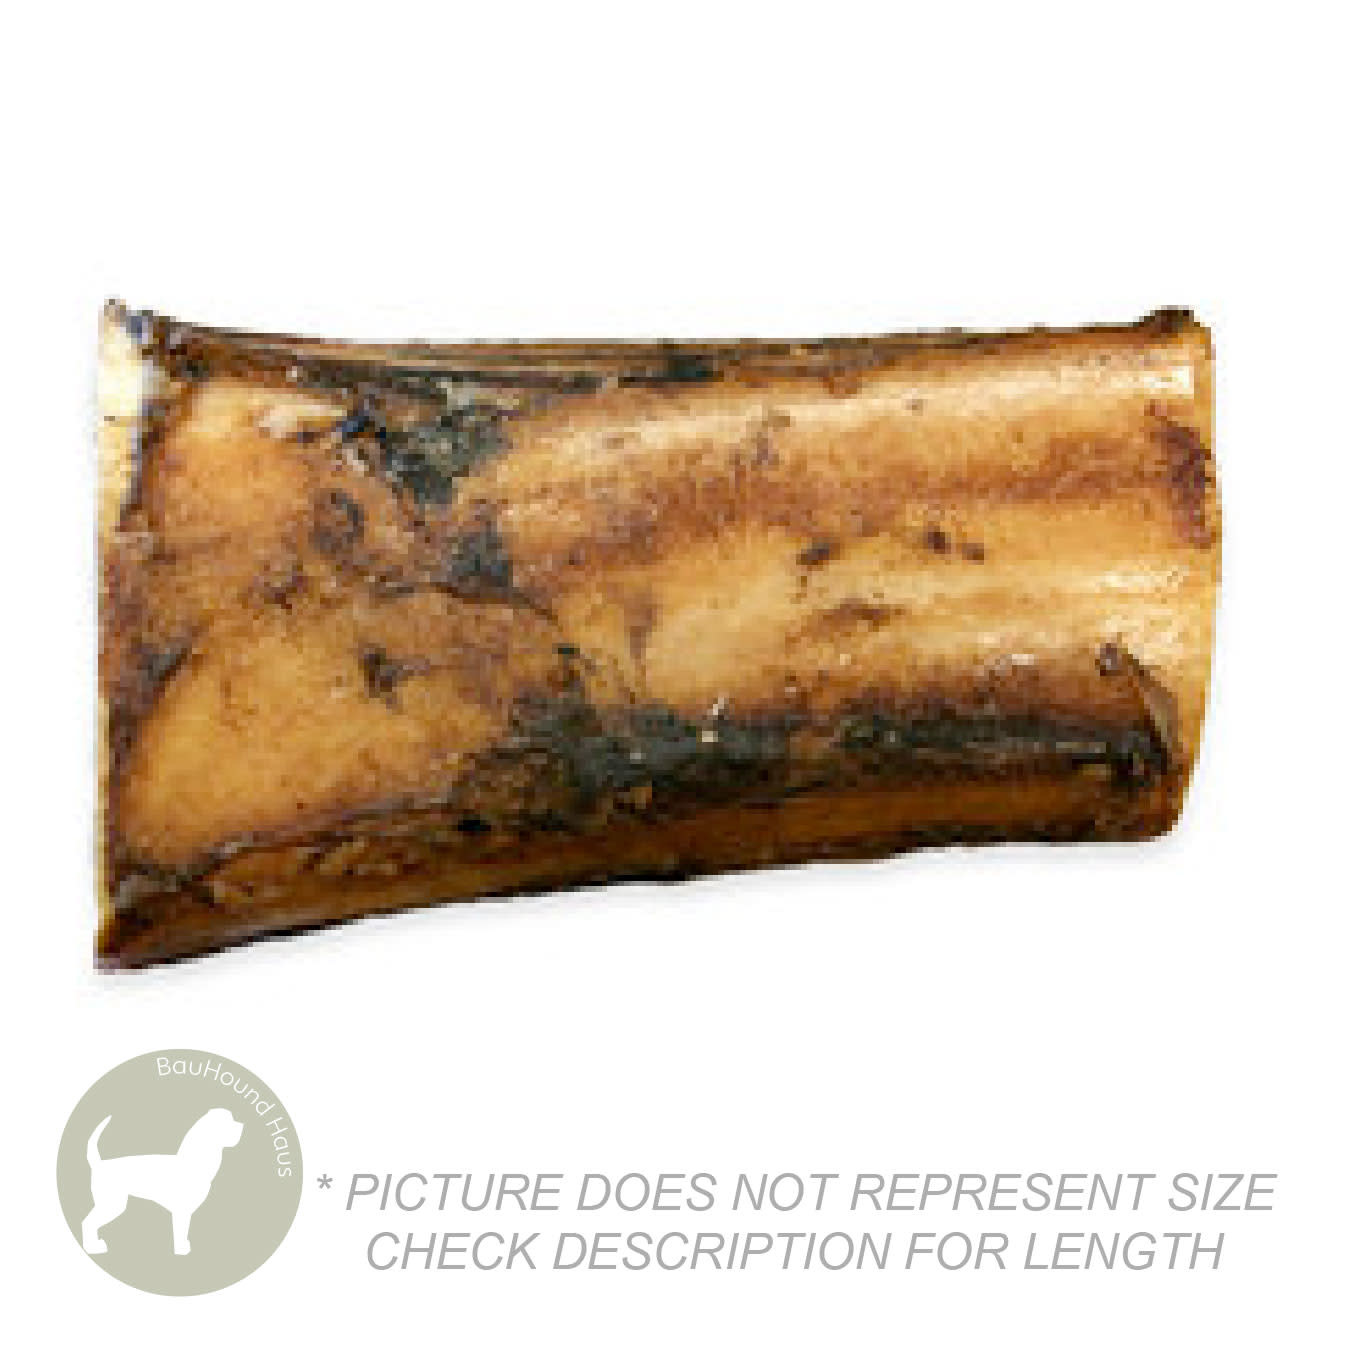 Artisan Farms Artisan Farms Marrow Bone 1 inch